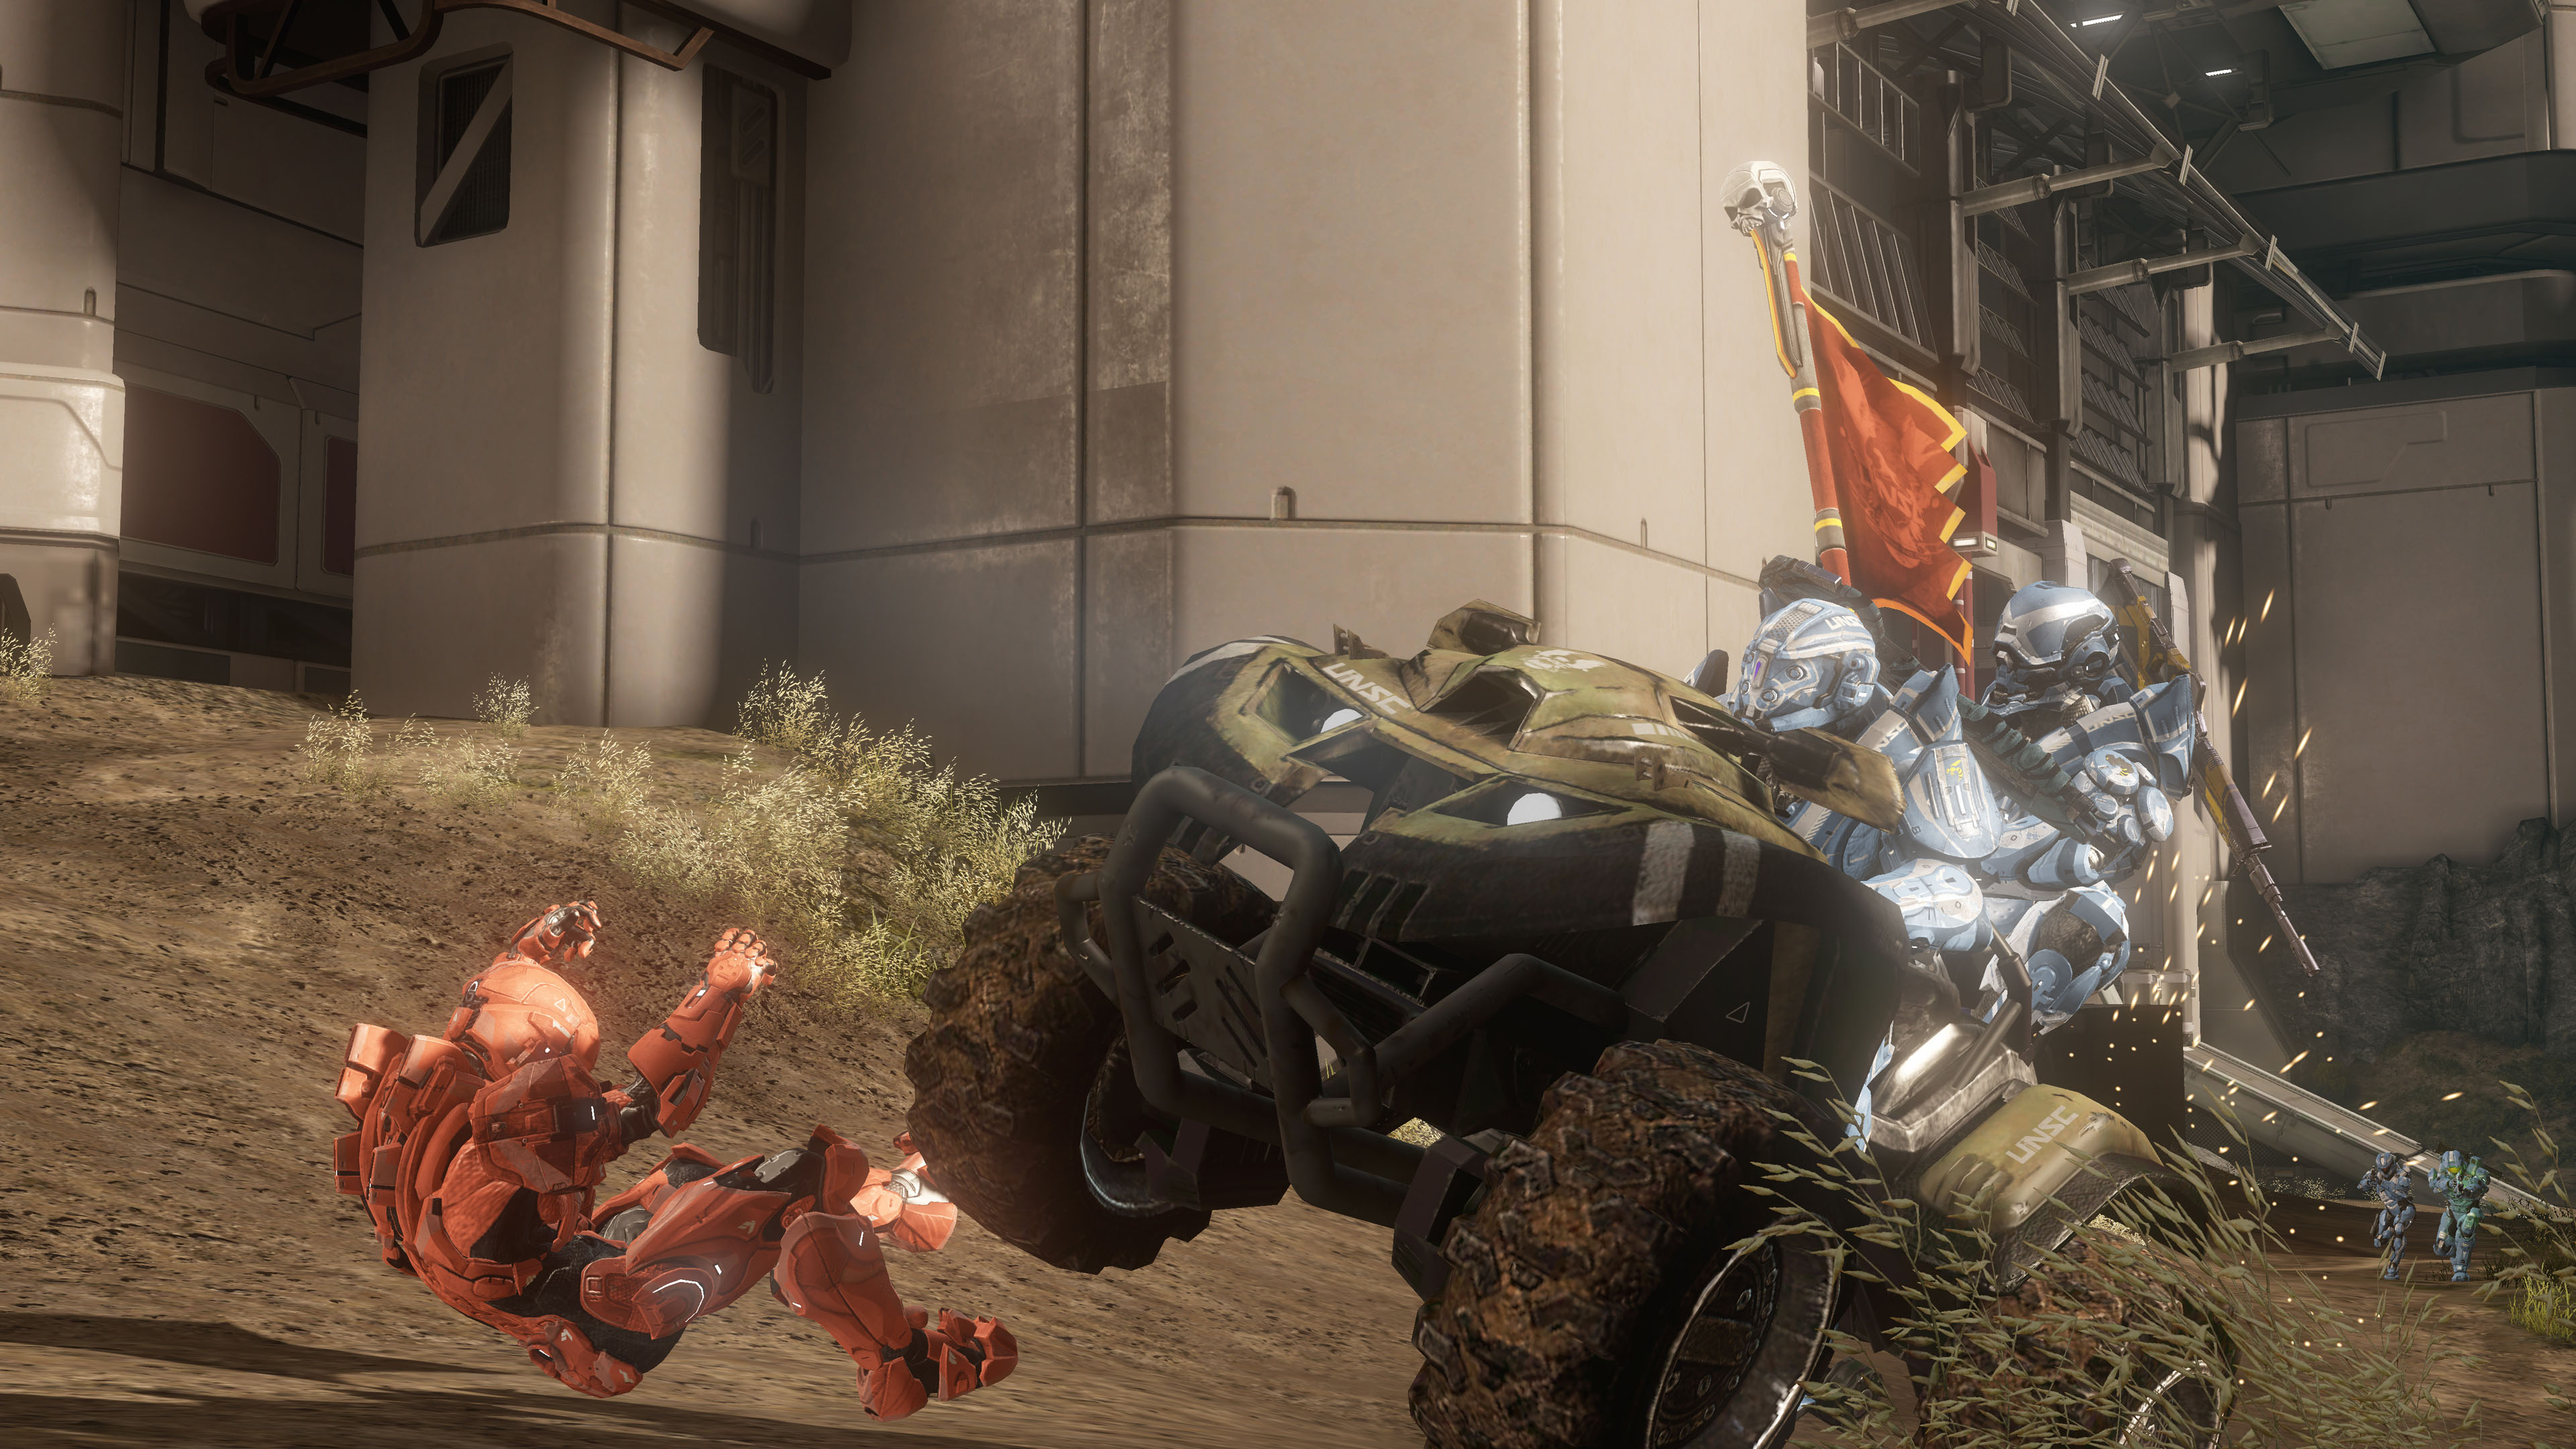 Halo 4 Harvest screenshot